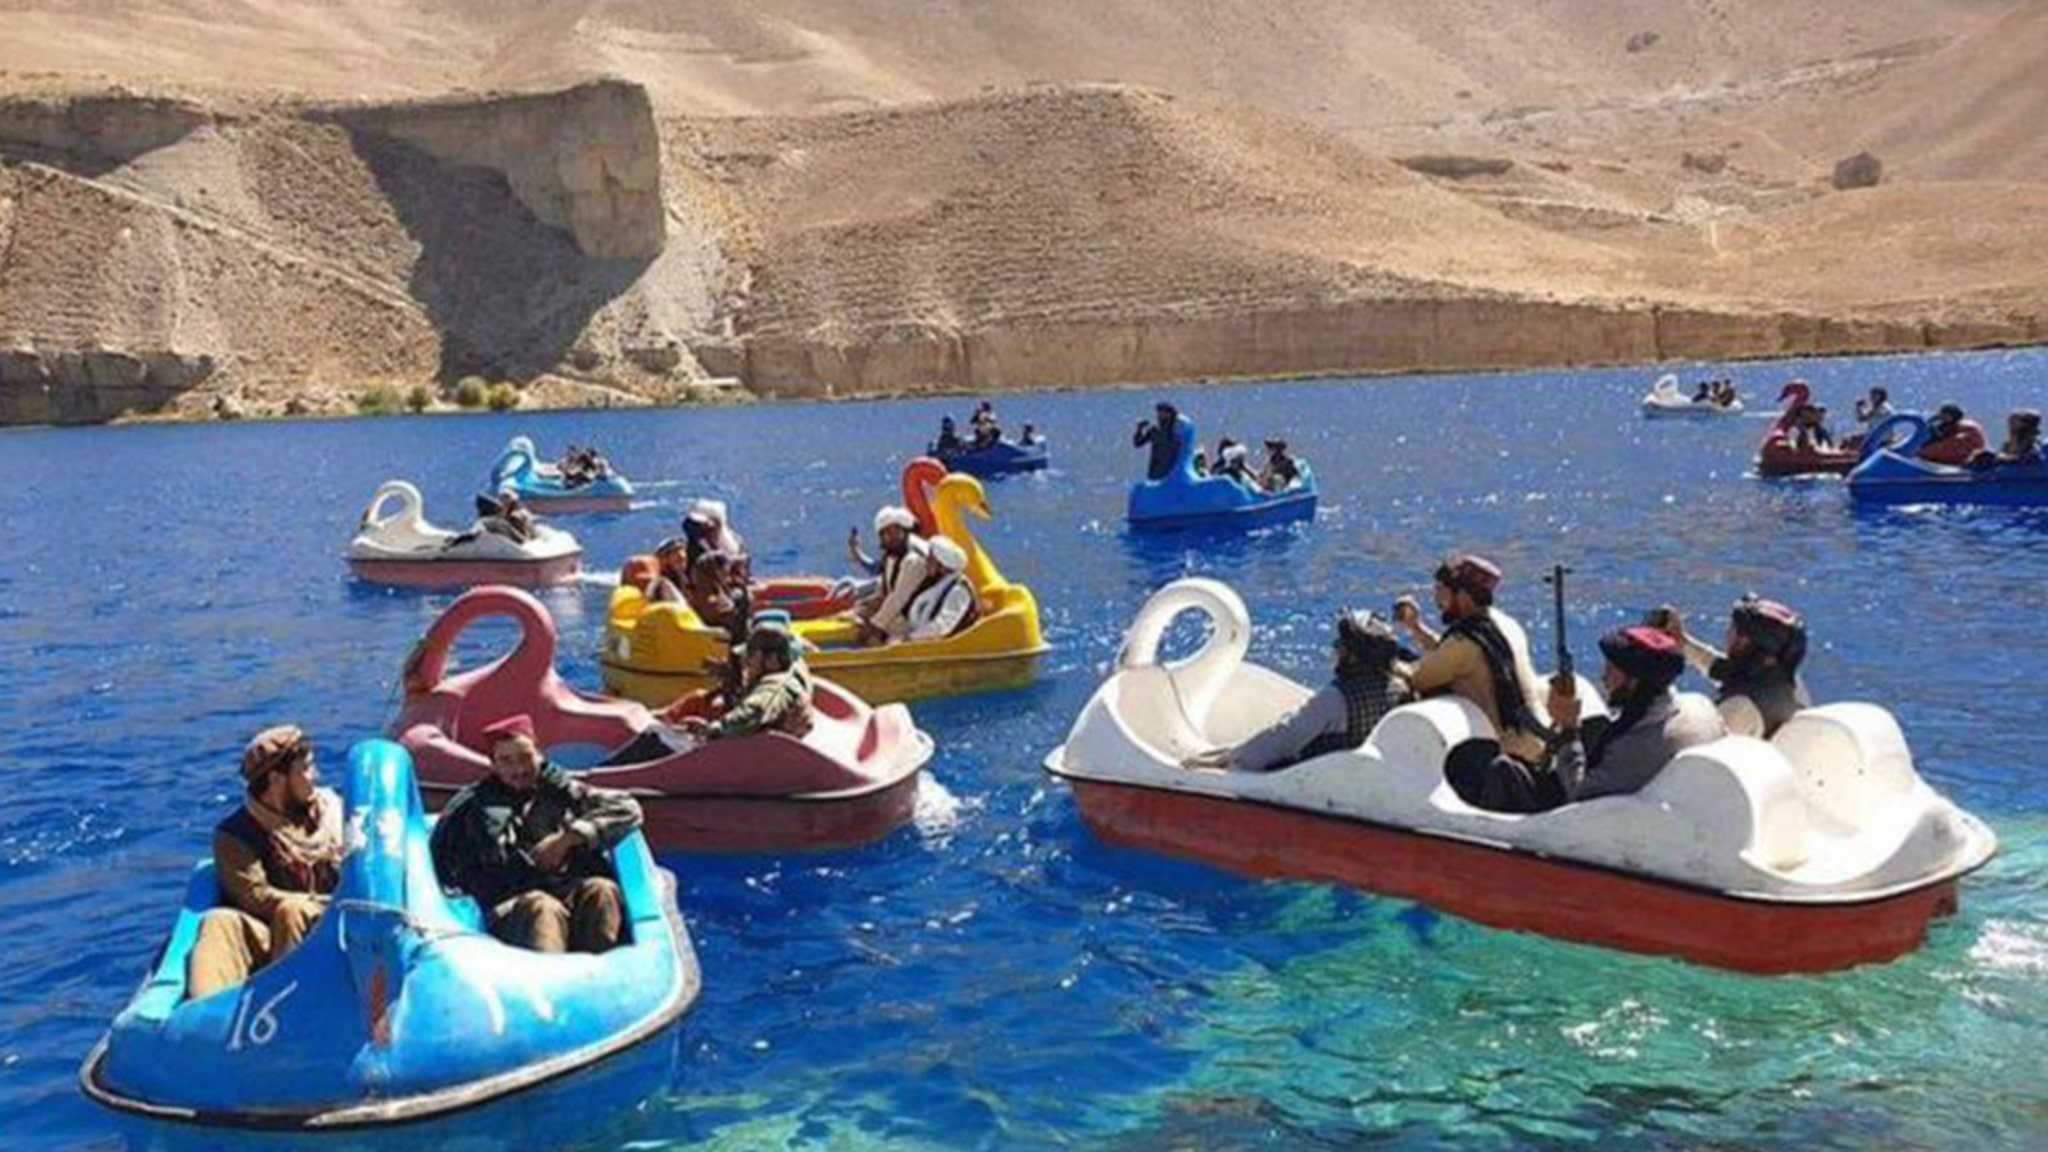 Taliban Pedal Boating with Assault Rifles in Afghanistan National Park